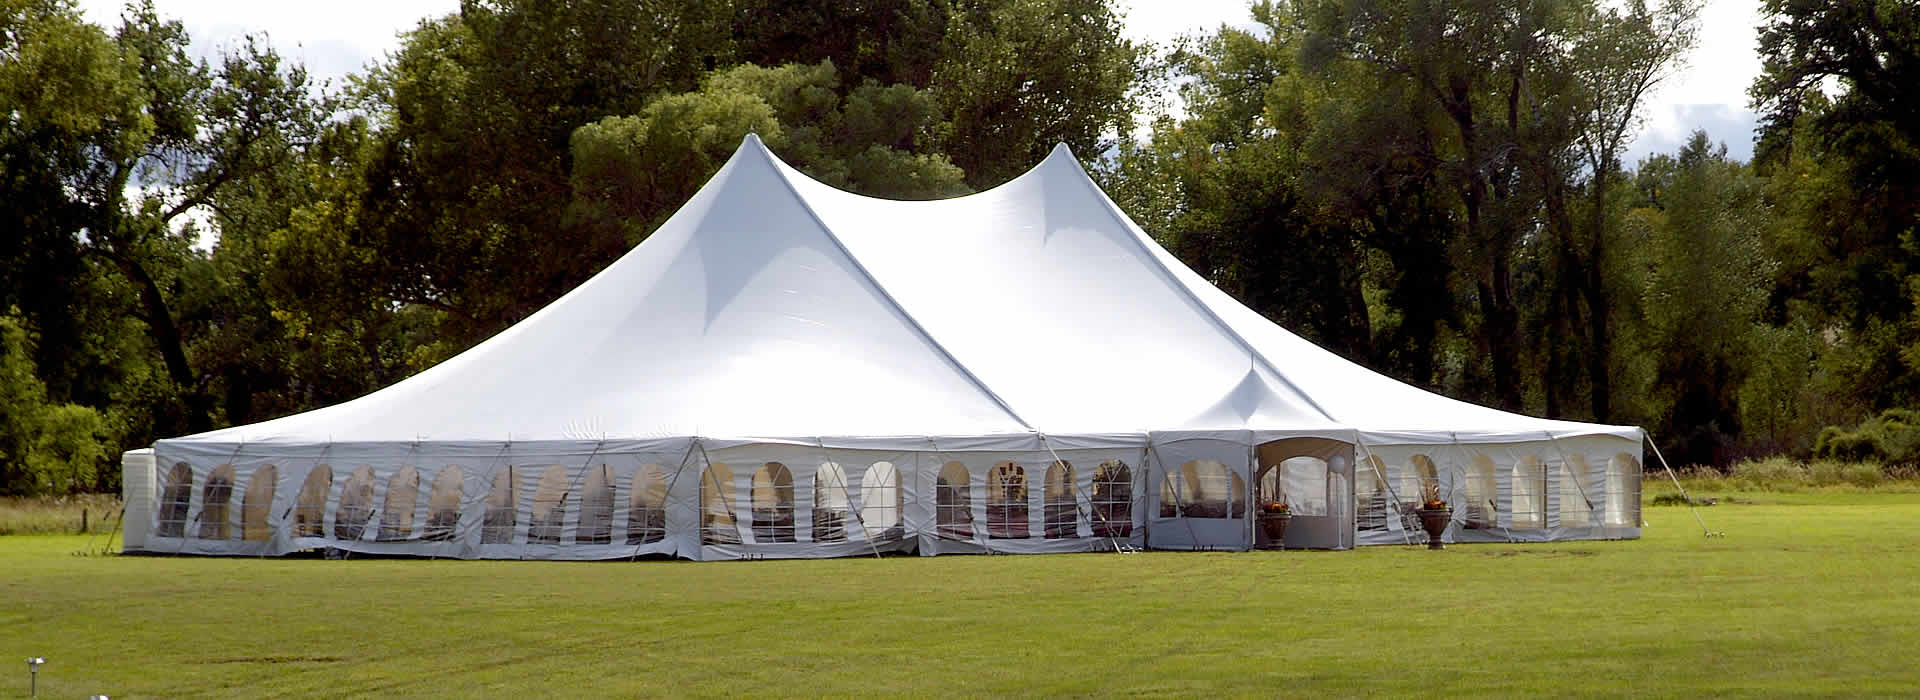 Peg & Pole Tents